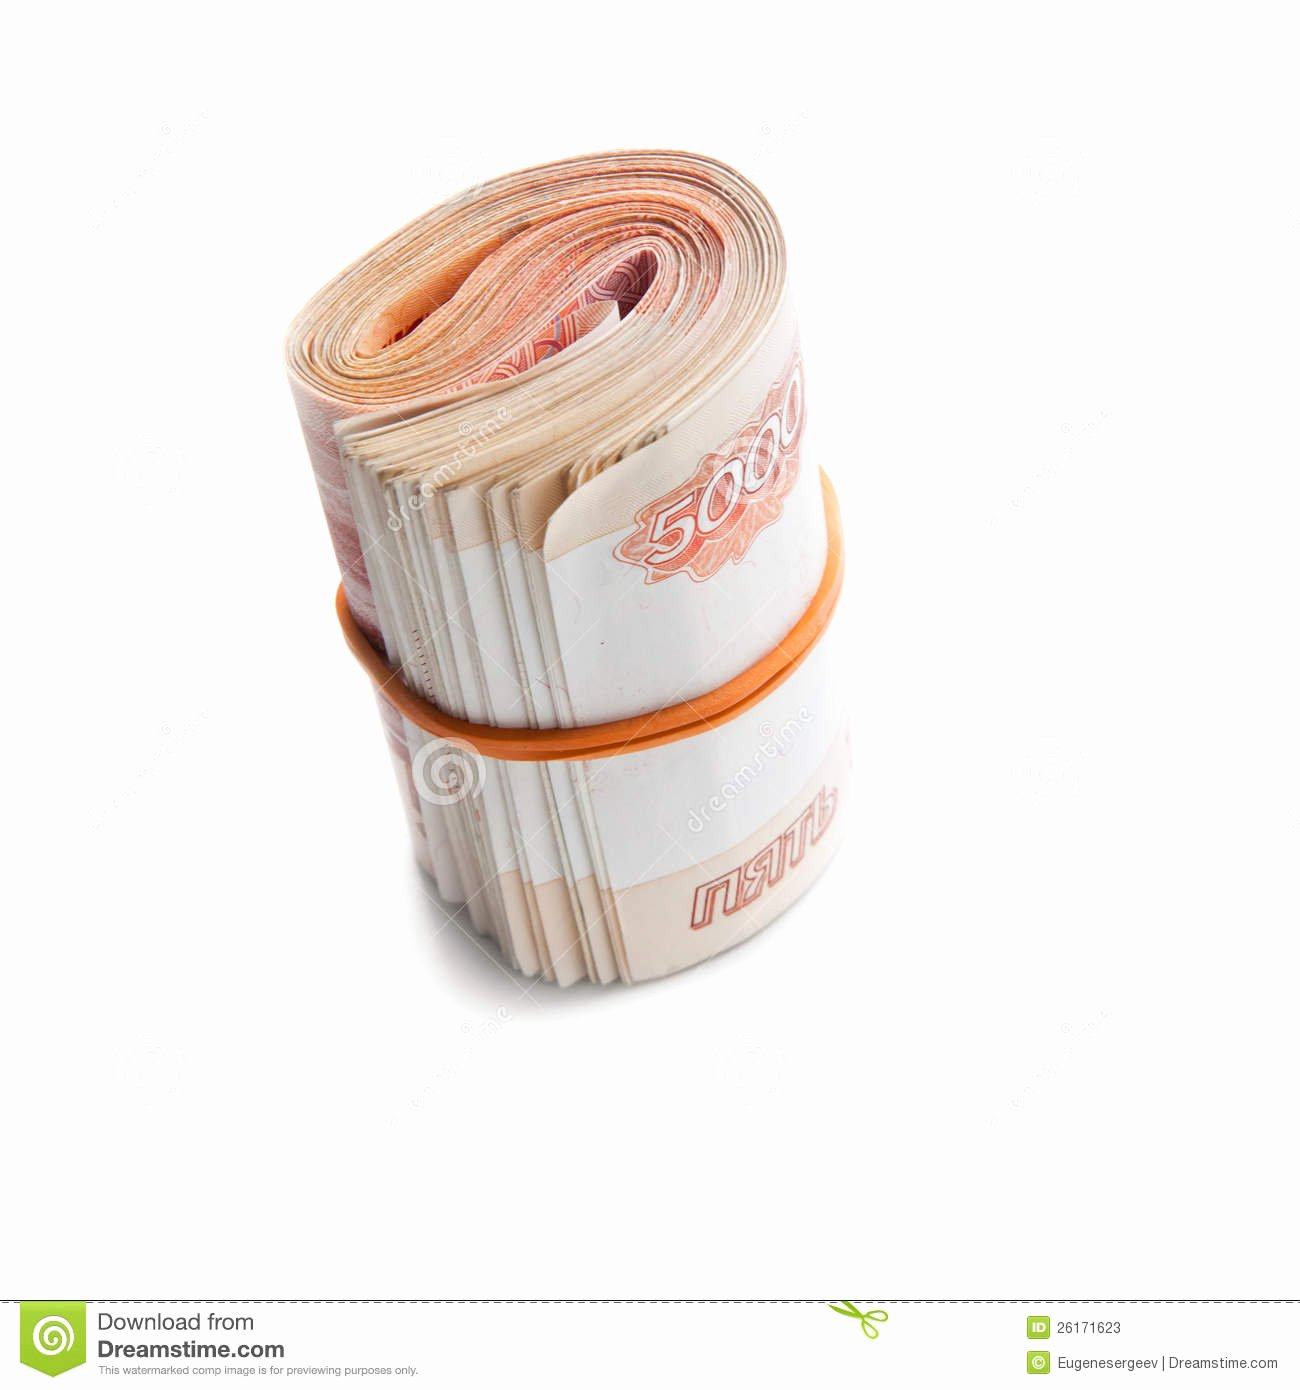 Free Printable Money Bands Inspirational Roll Russian Money with Rubber Band Stock Image Image